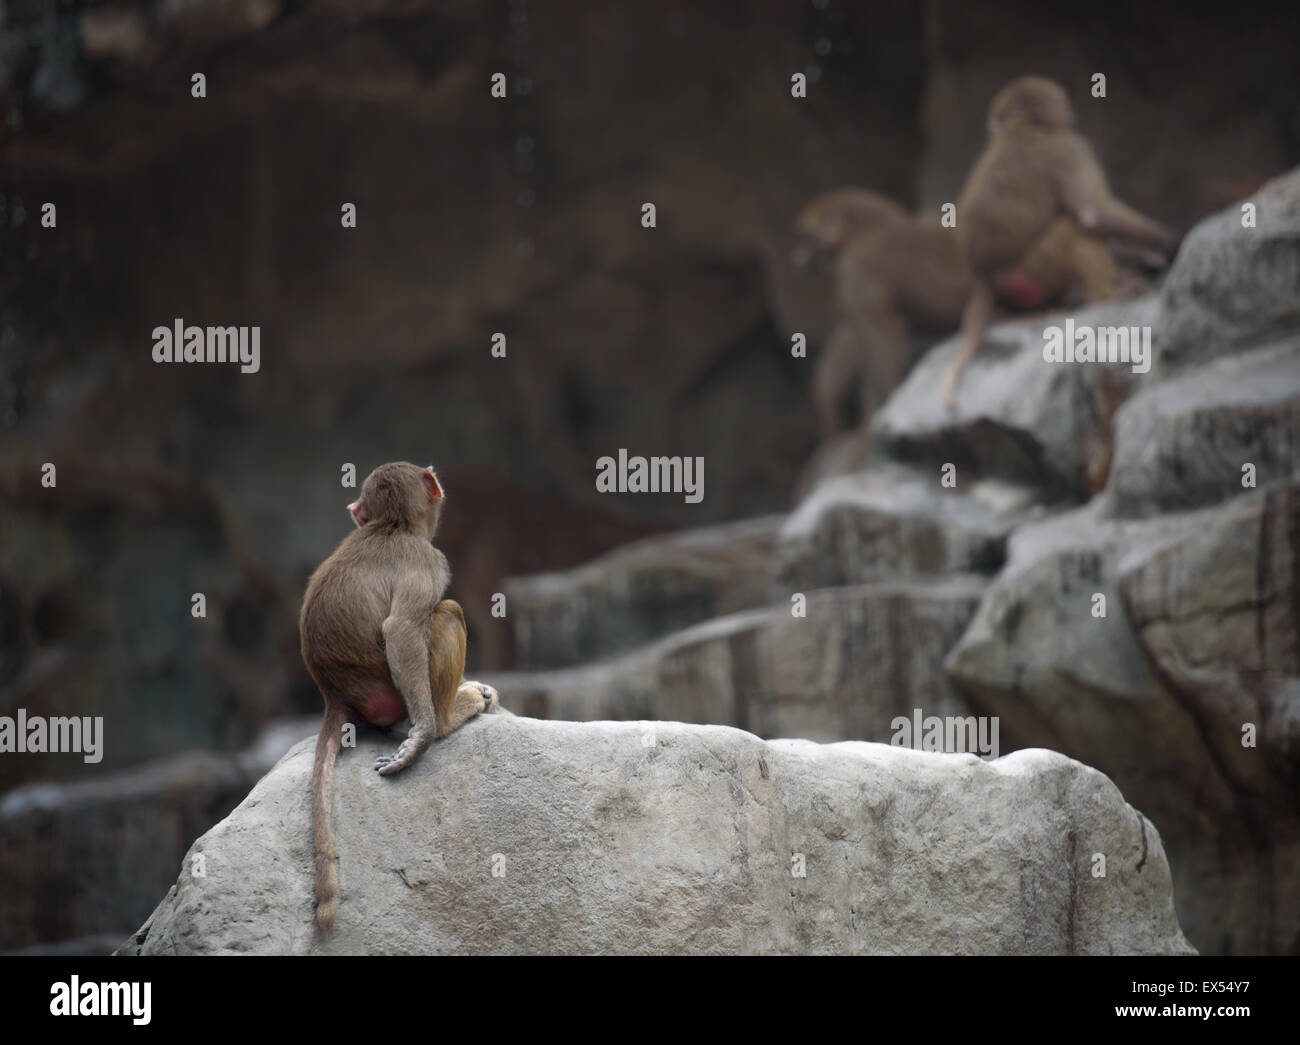 Baby monkey of Hamadryas baboon sitting in a sad and lonely pose Stock Photo